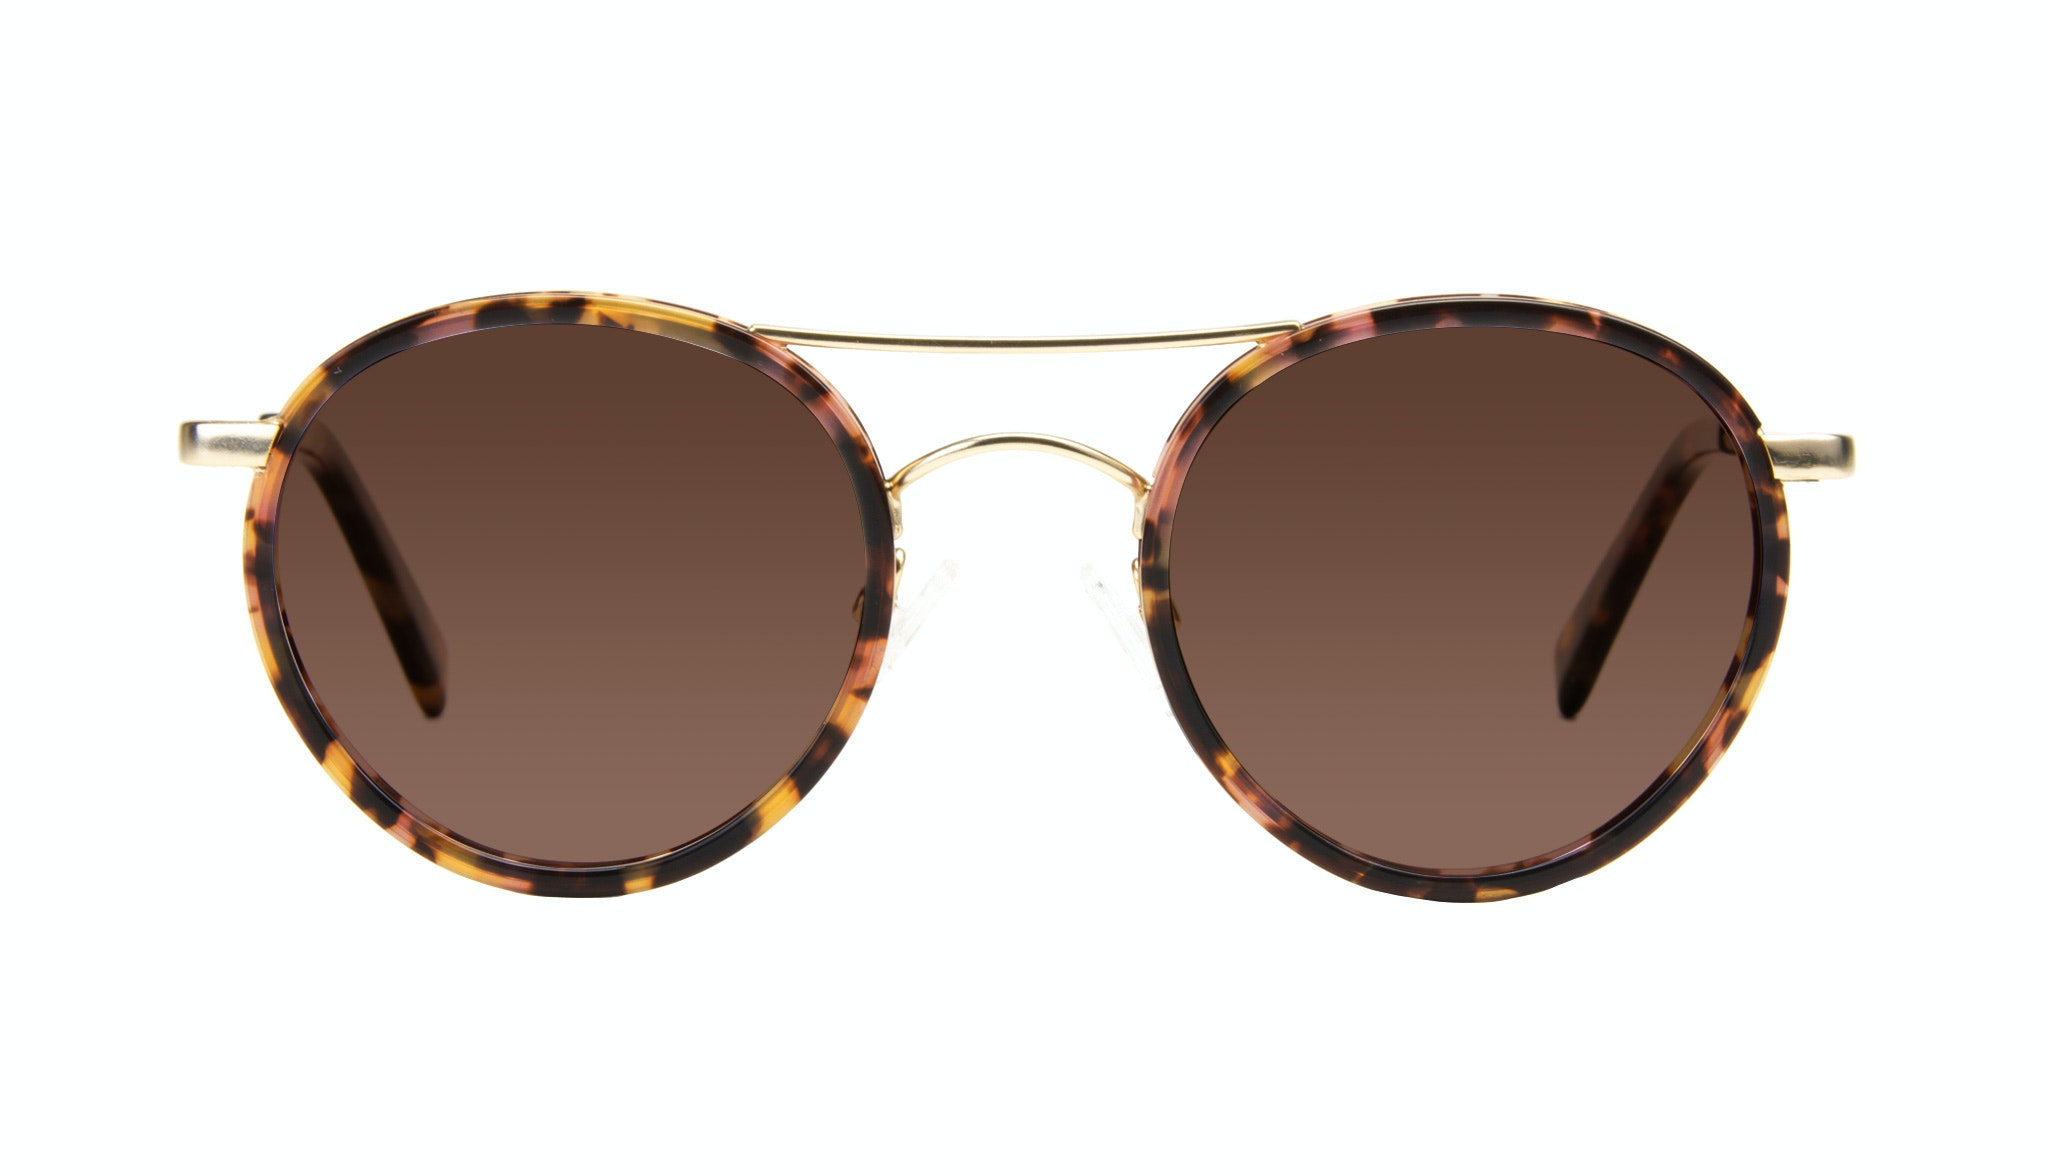 aviator round sunglasses  Women\u0027s Sunglasses - Chelsea in Gold Tortoise